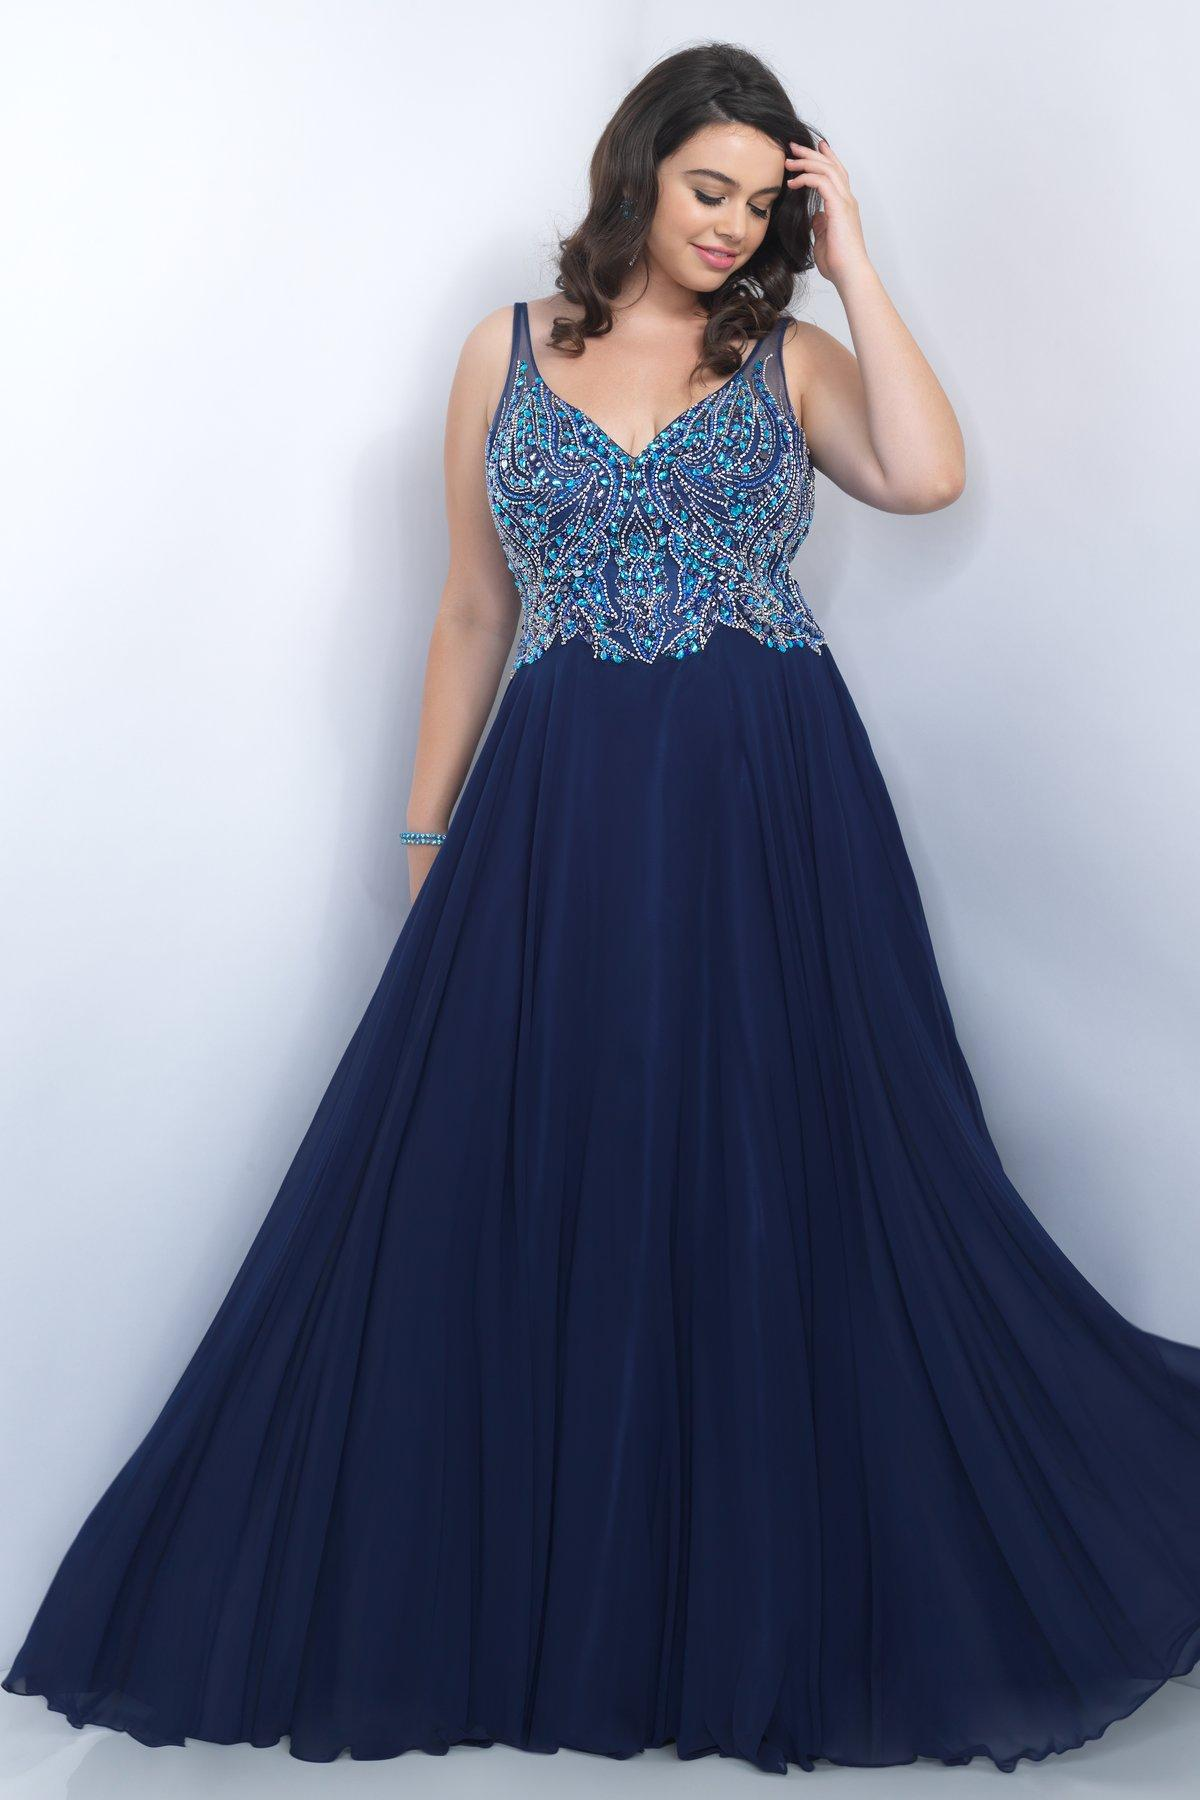 Plus Size Womens Navy V Neck 2016 Plus Size Prom Evening Gowns Dresses  Sheer Backless Crystal Sequined 11058 New Cheap Evening Gowns Formal  Pageant ...